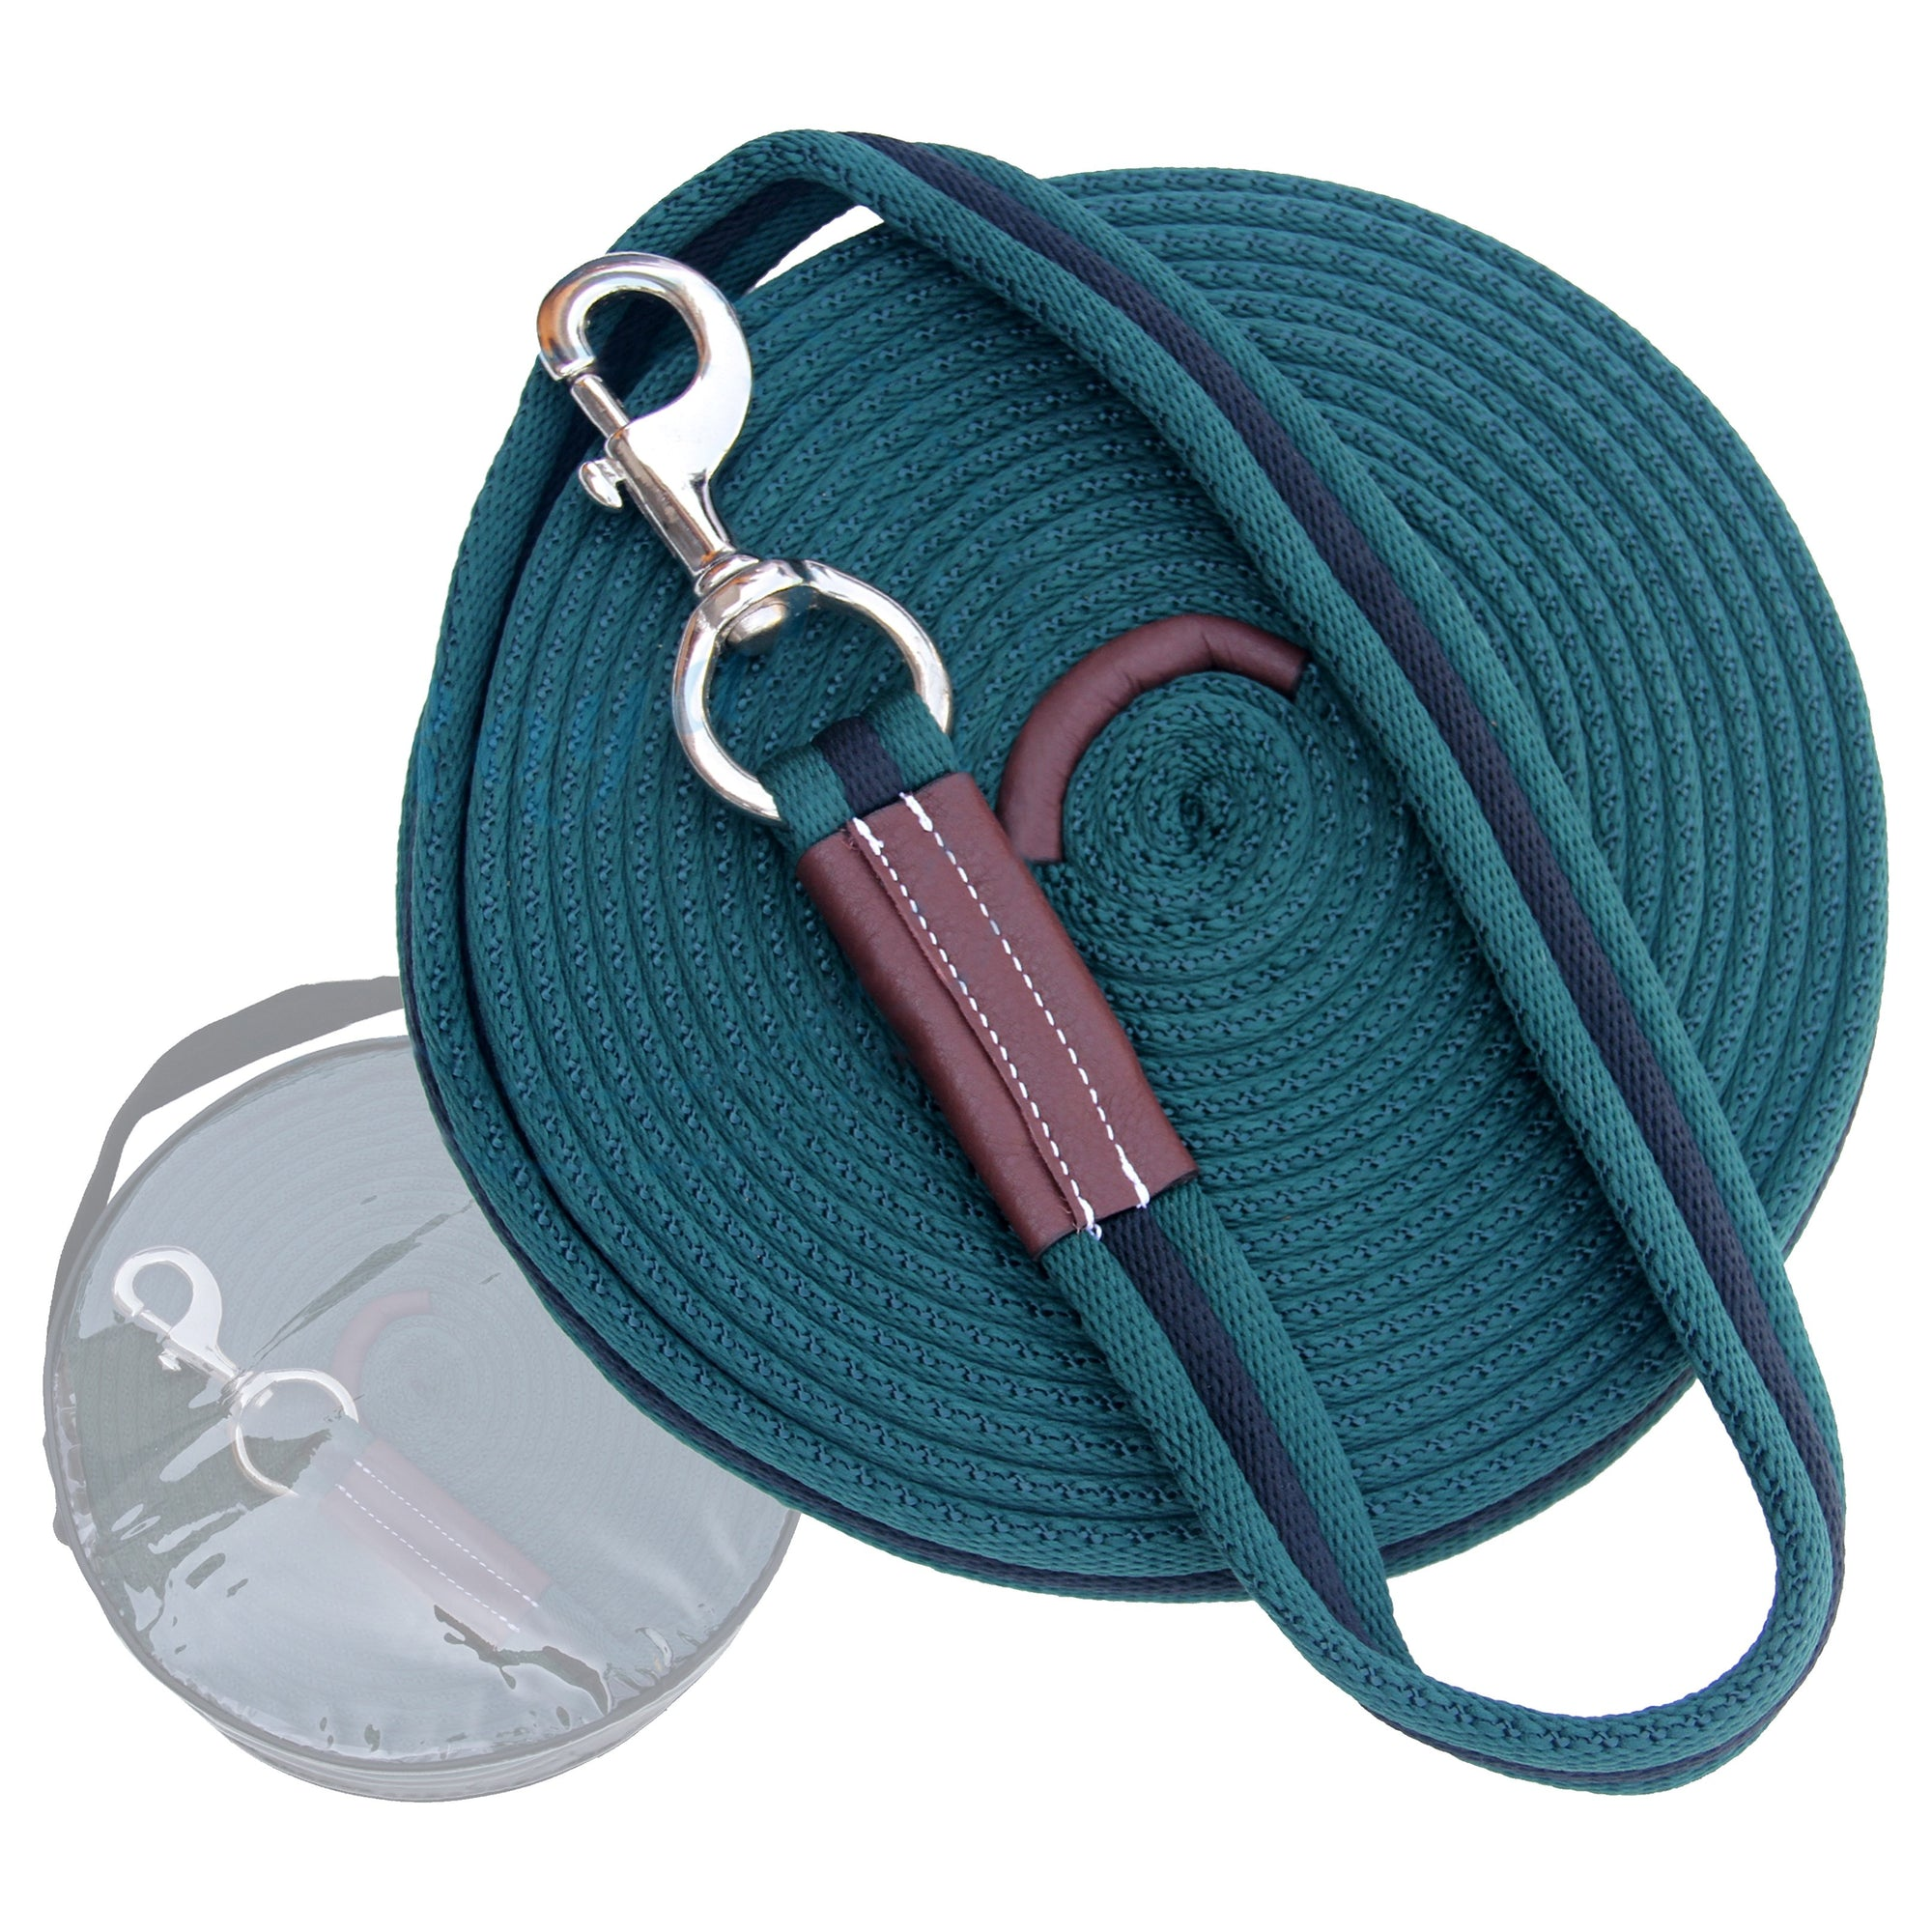 ExionPro Contrast Cerulean Blue with Dark Blue Color Web Cushion Leads